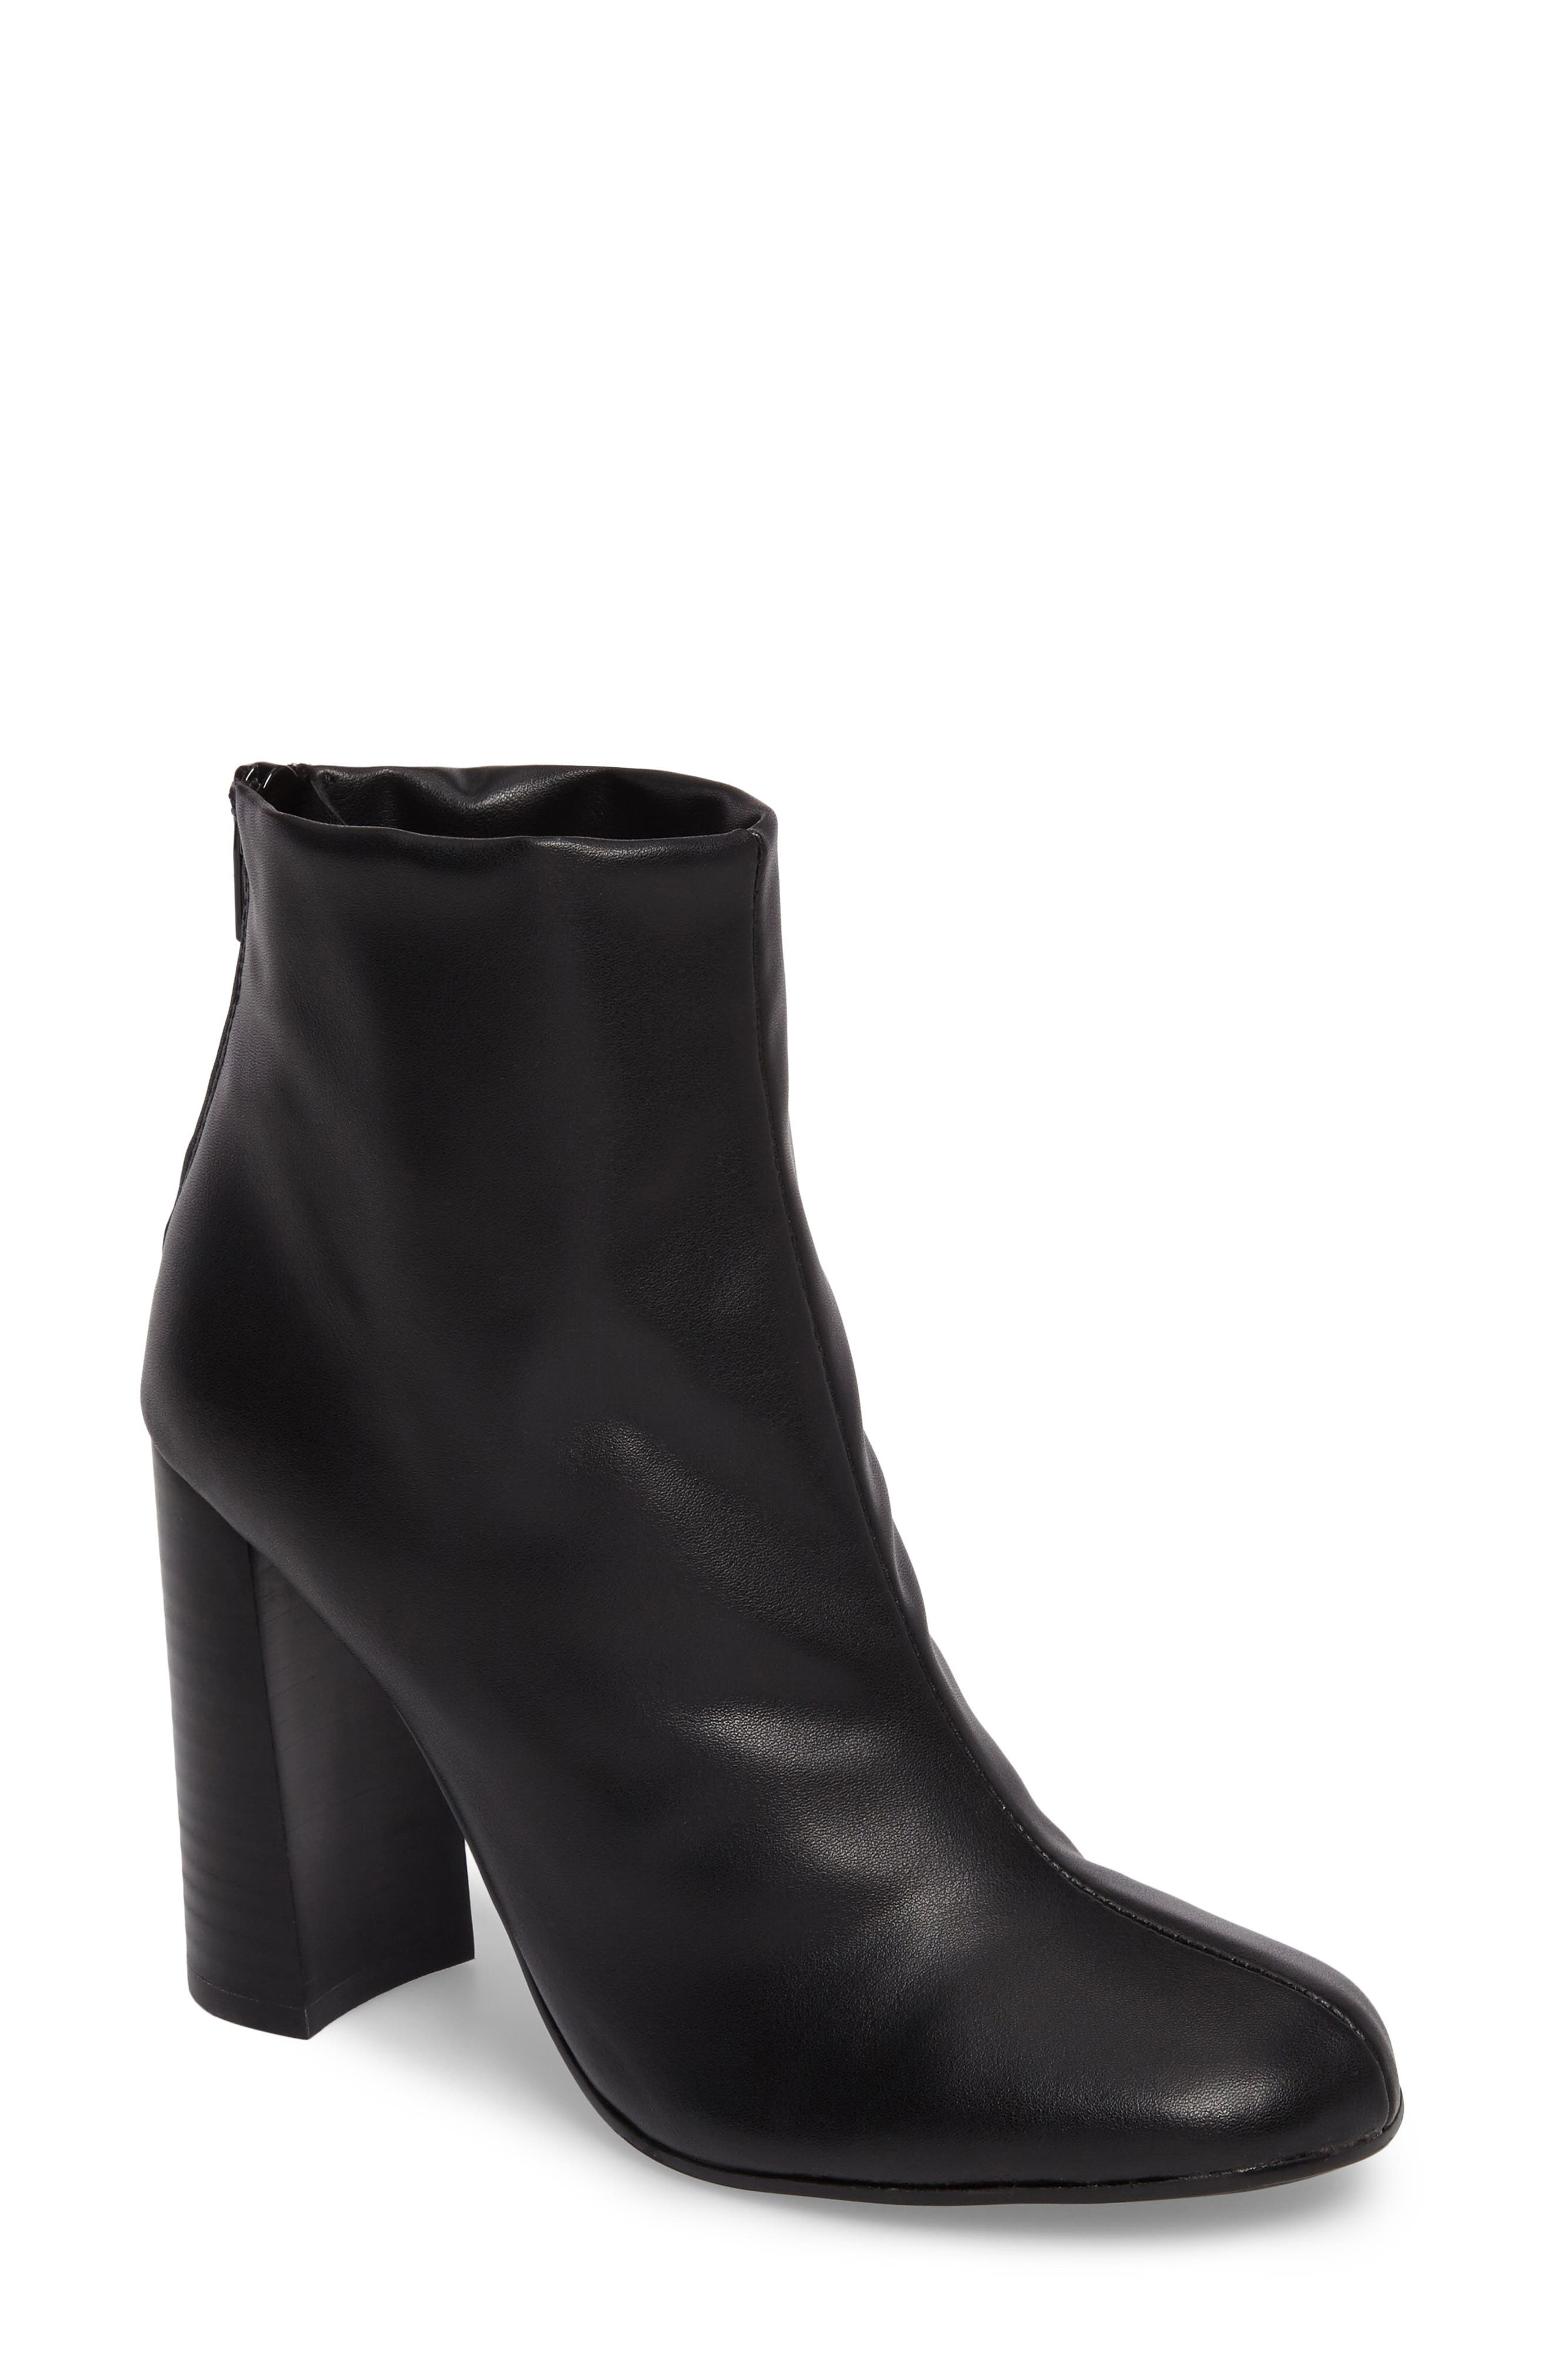 Nyx Stretch Bootie,                             Main thumbnail 1, color,                             001